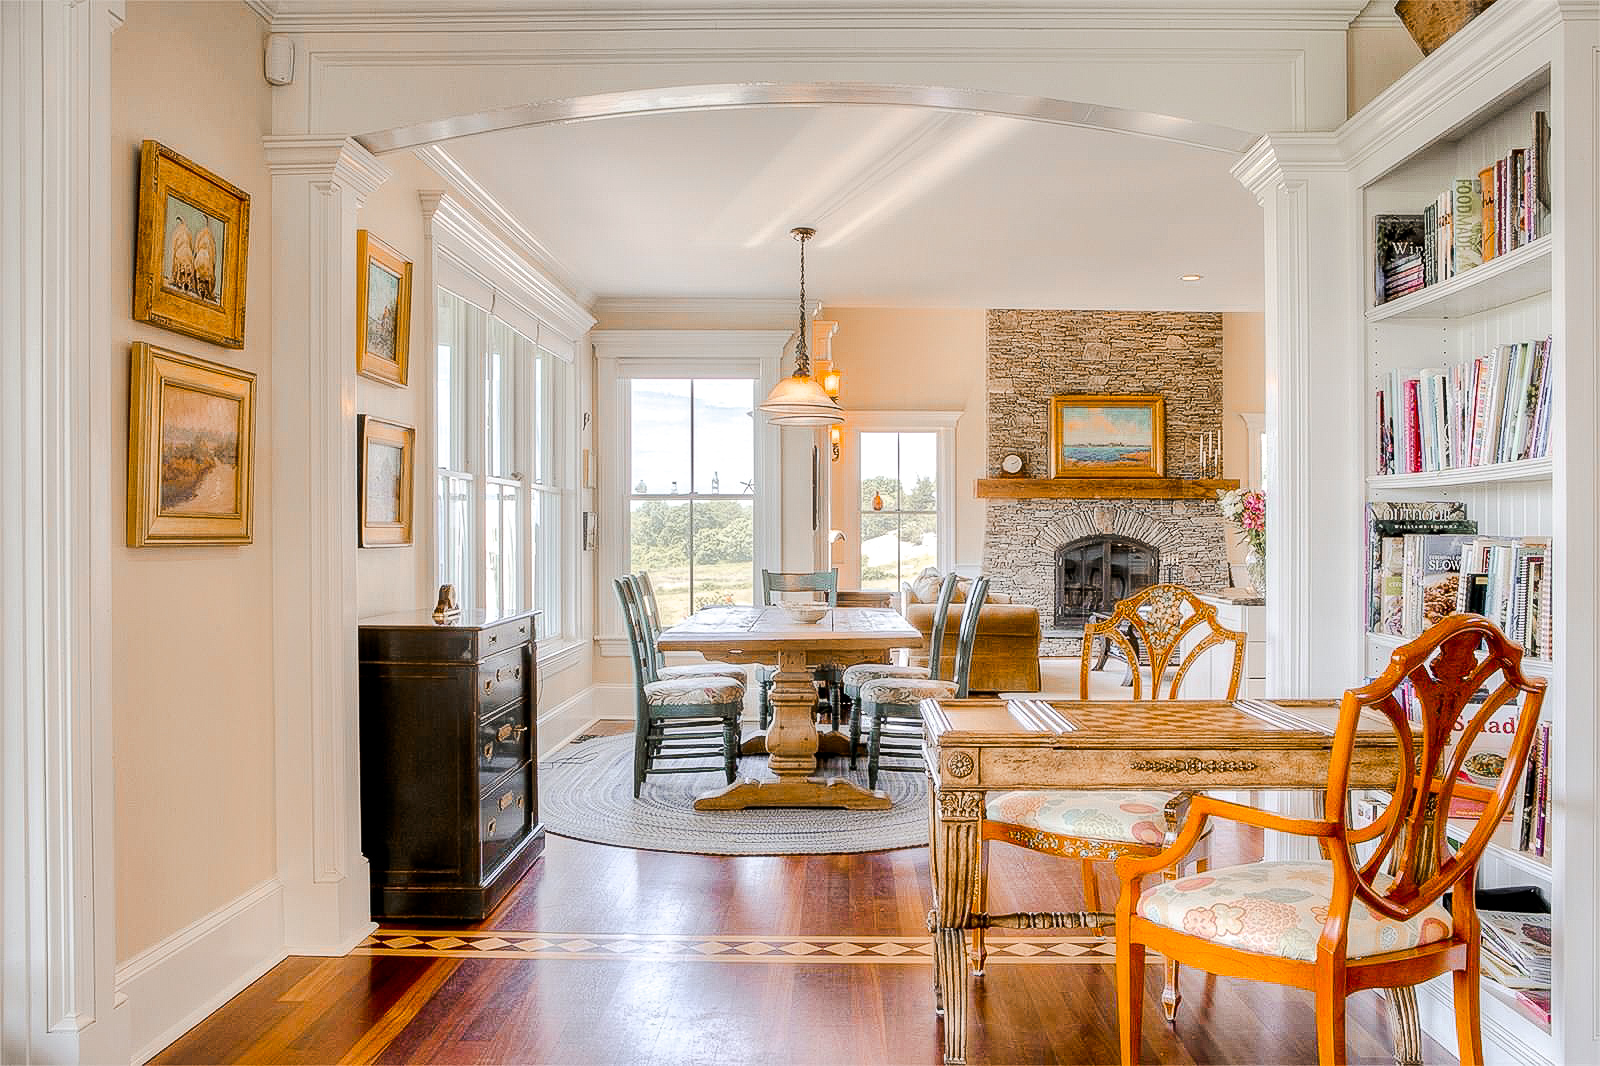 Luxe_and_Livable_Interior_Design_Blog_by_Maloney_Interiors_Newport_Rhode_Island_Gustave_White_Realty_28.jpg